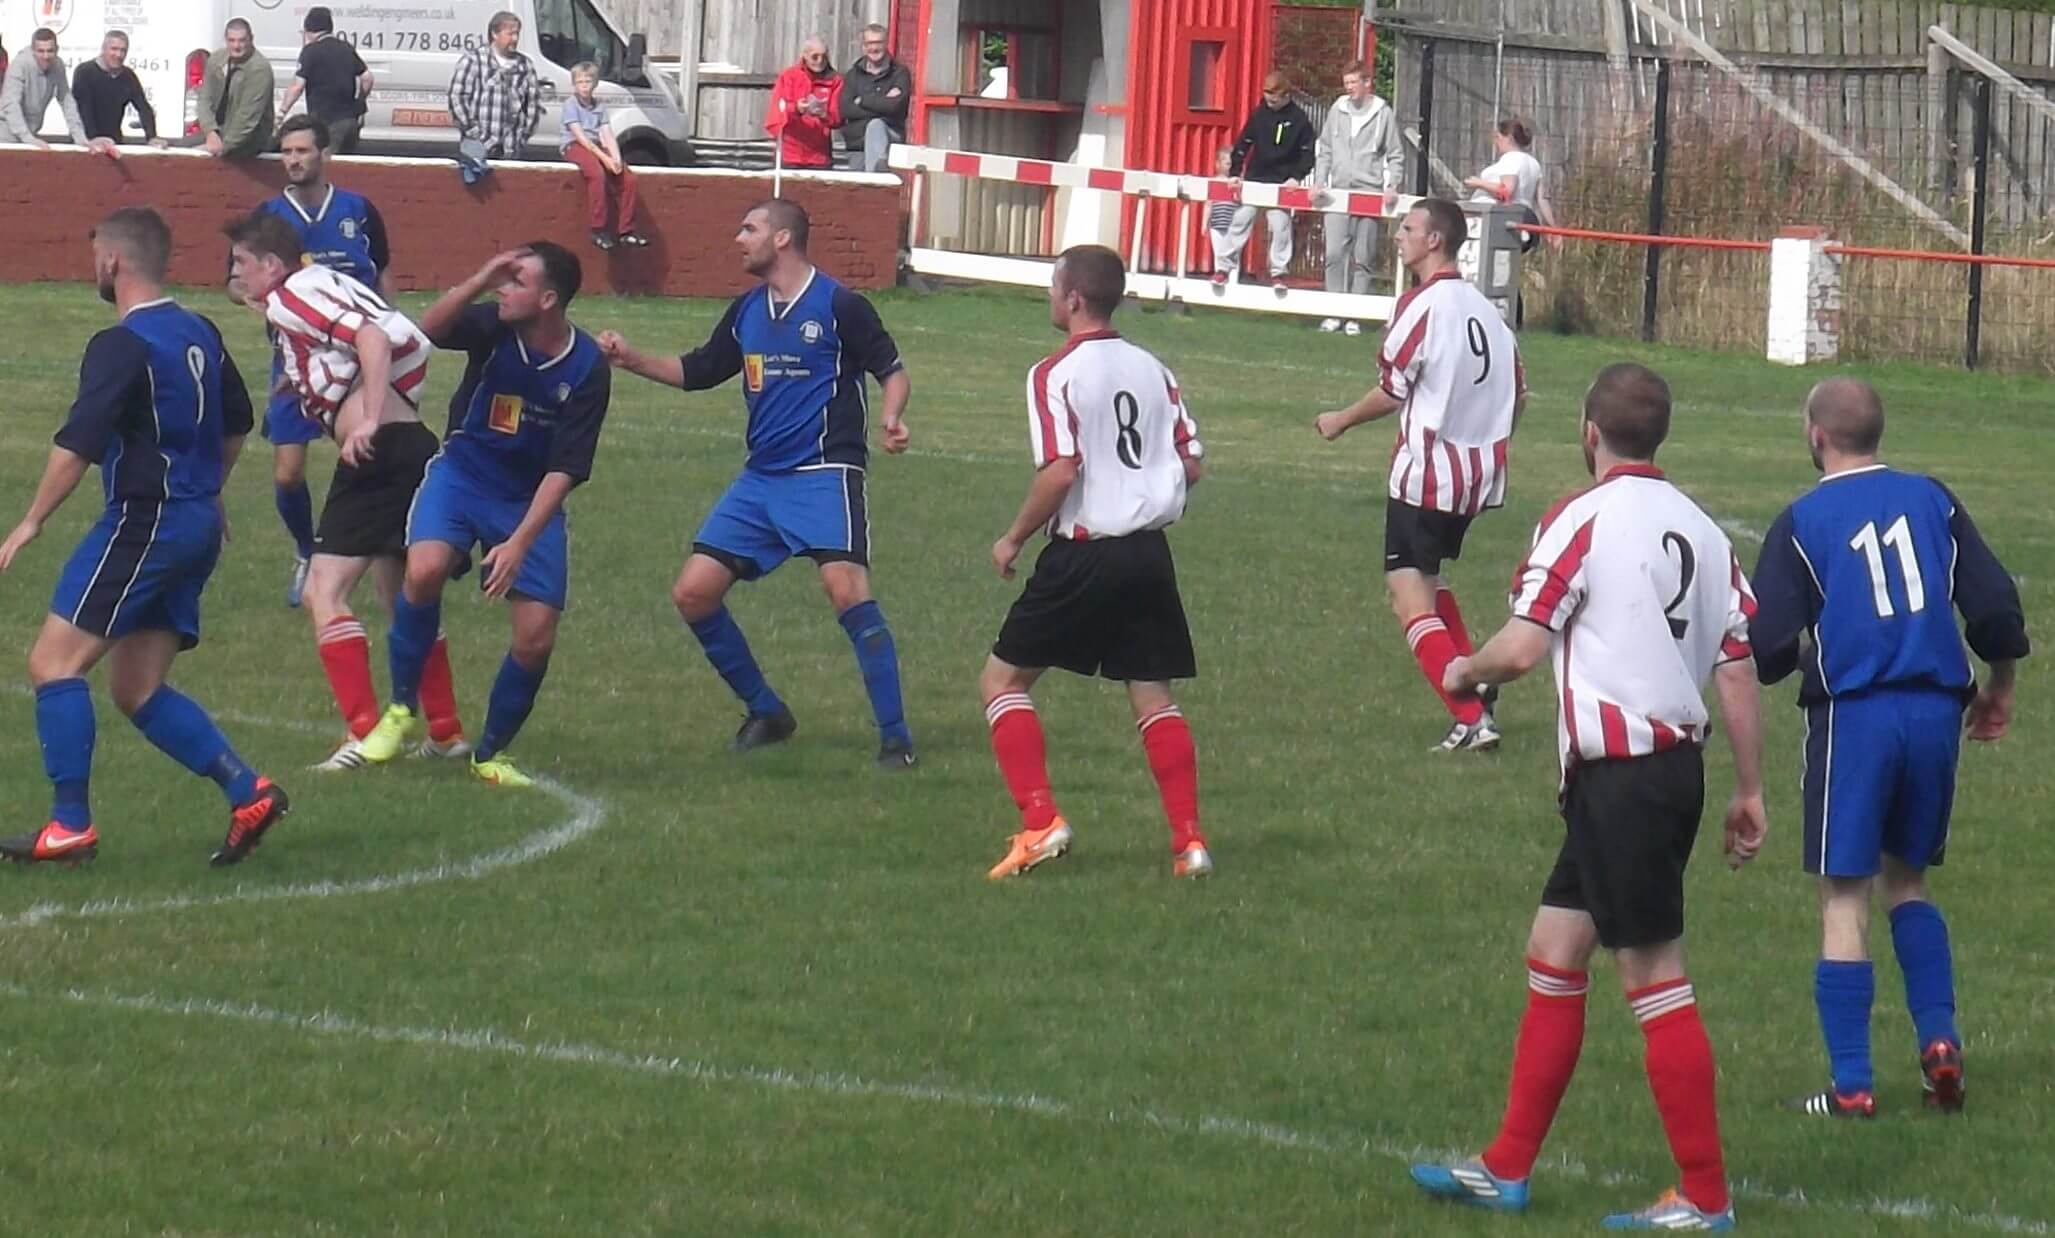 Larkhall Thistle v Blantyre Victoria 6th September 2014